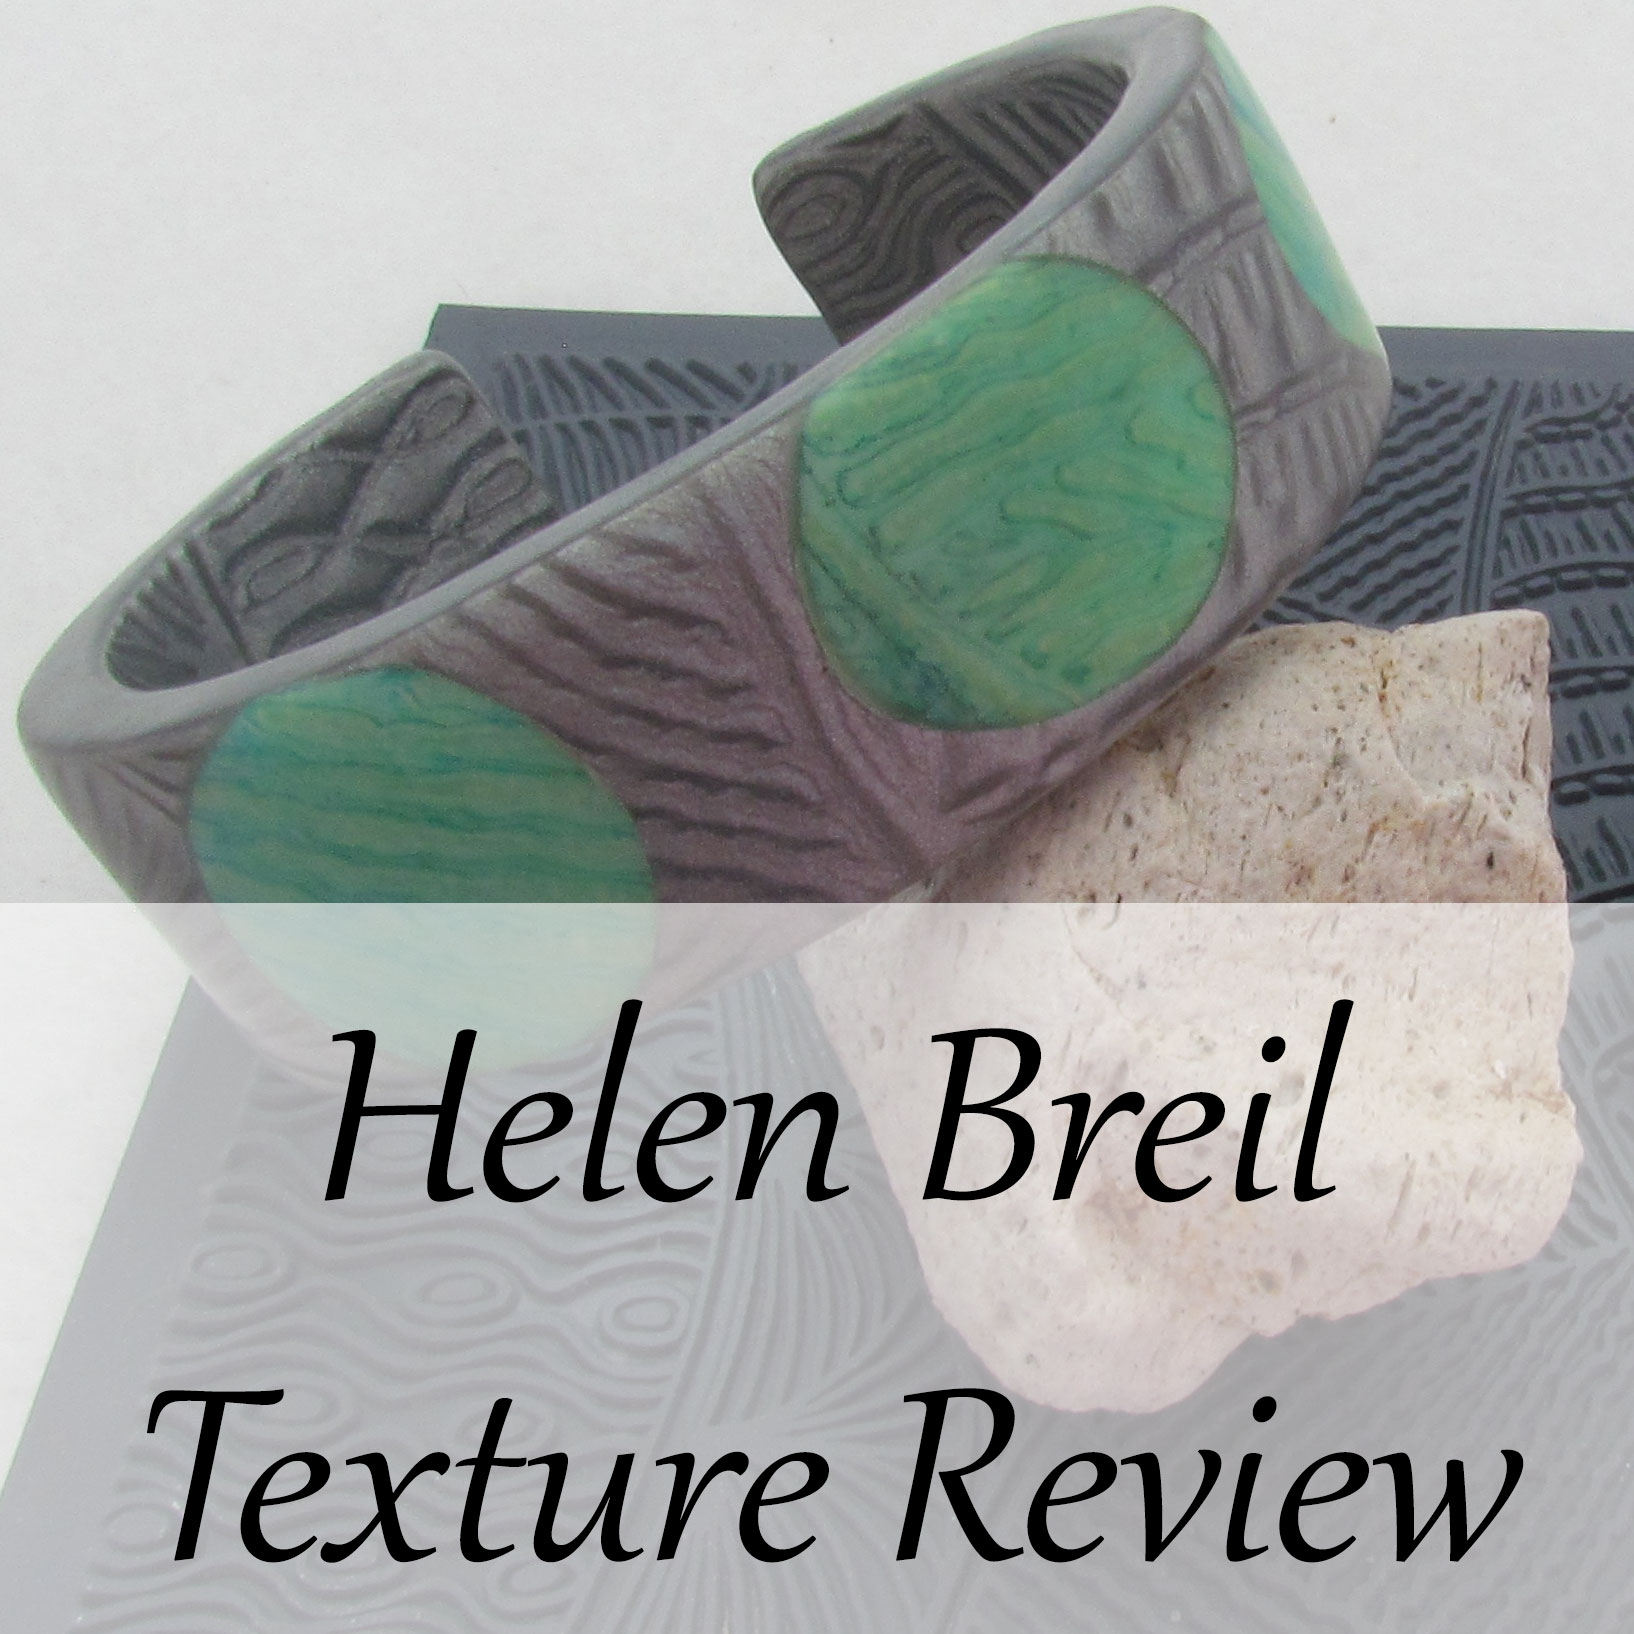 Helen Breil Texture Stamps for polymer clay